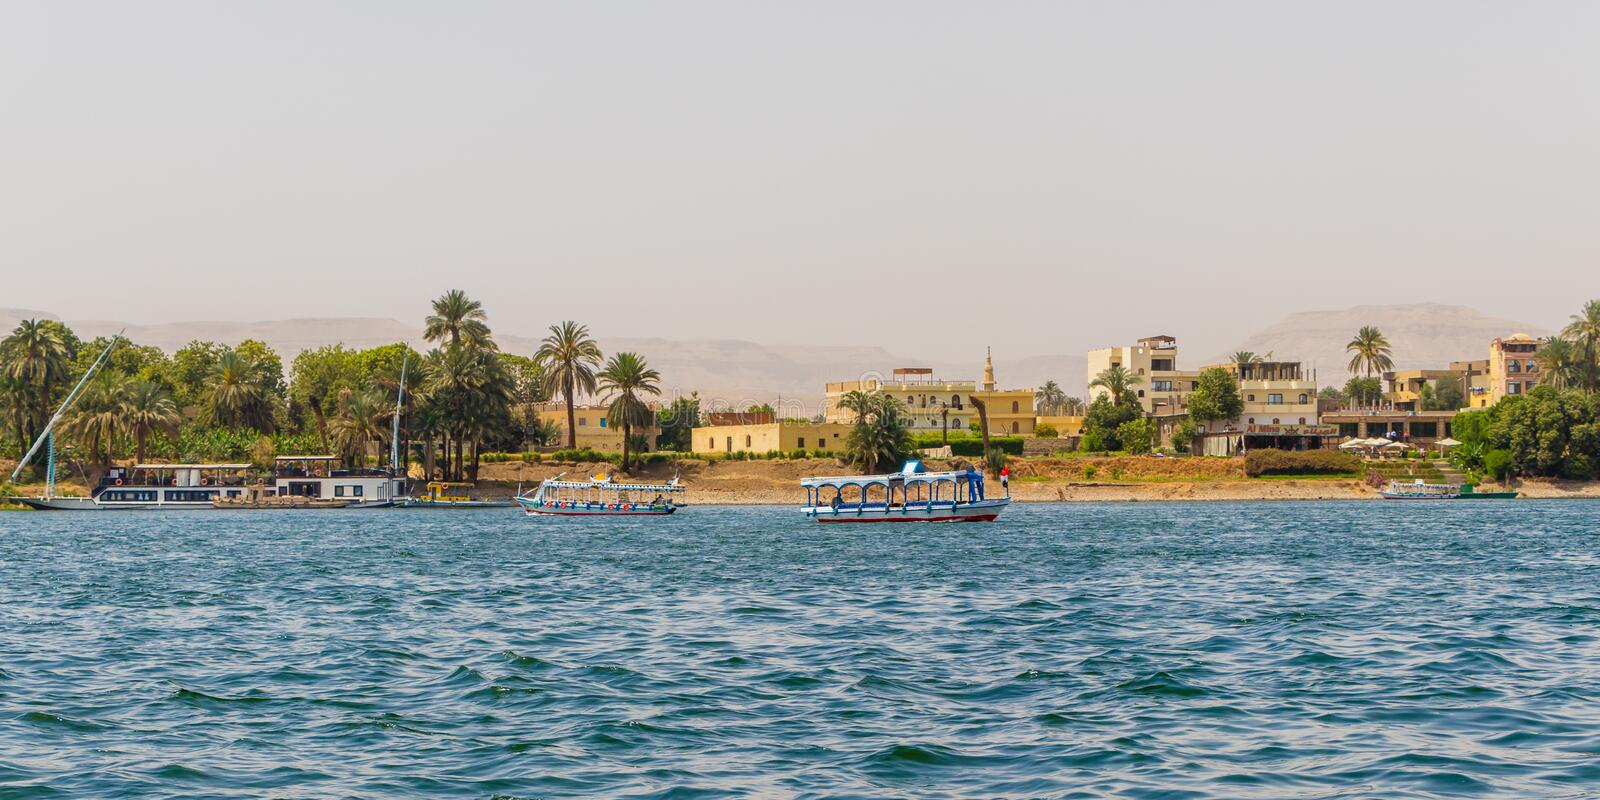 View of the Nile river town coastline with sailboats in Luxor, Egypt. Nile River is the longest river in the world, called the father of African rivers. It rises royalty free stock photo